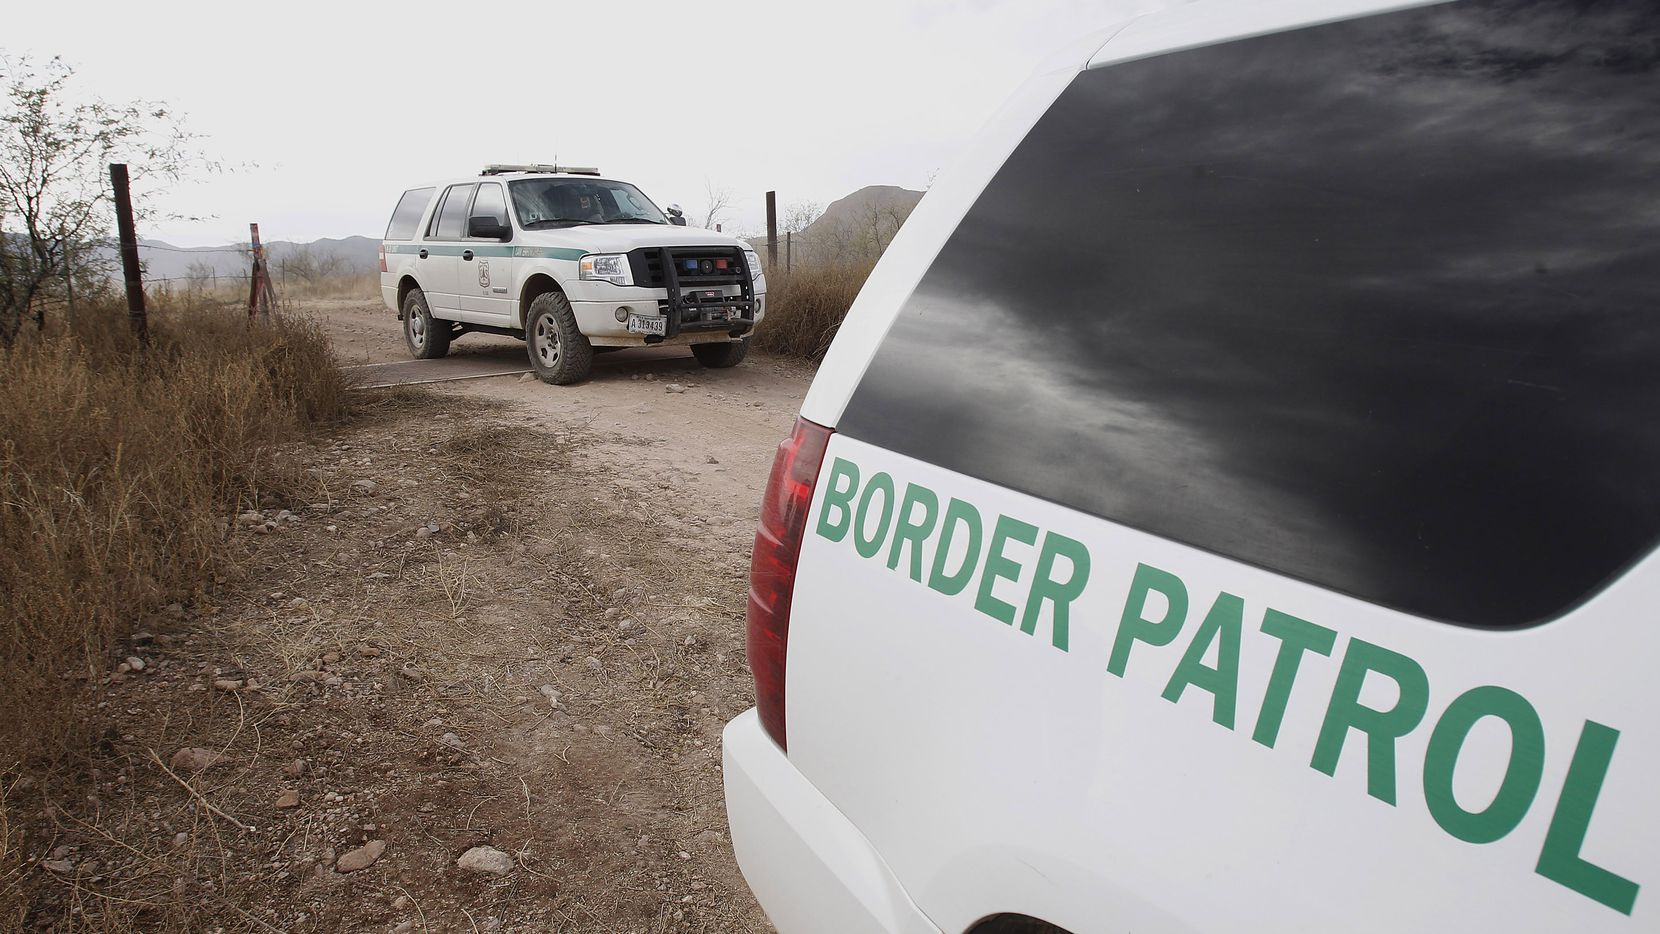 A border agent working in the Laredo sector is accused of killing four women and abducting a fifth in Webb County.